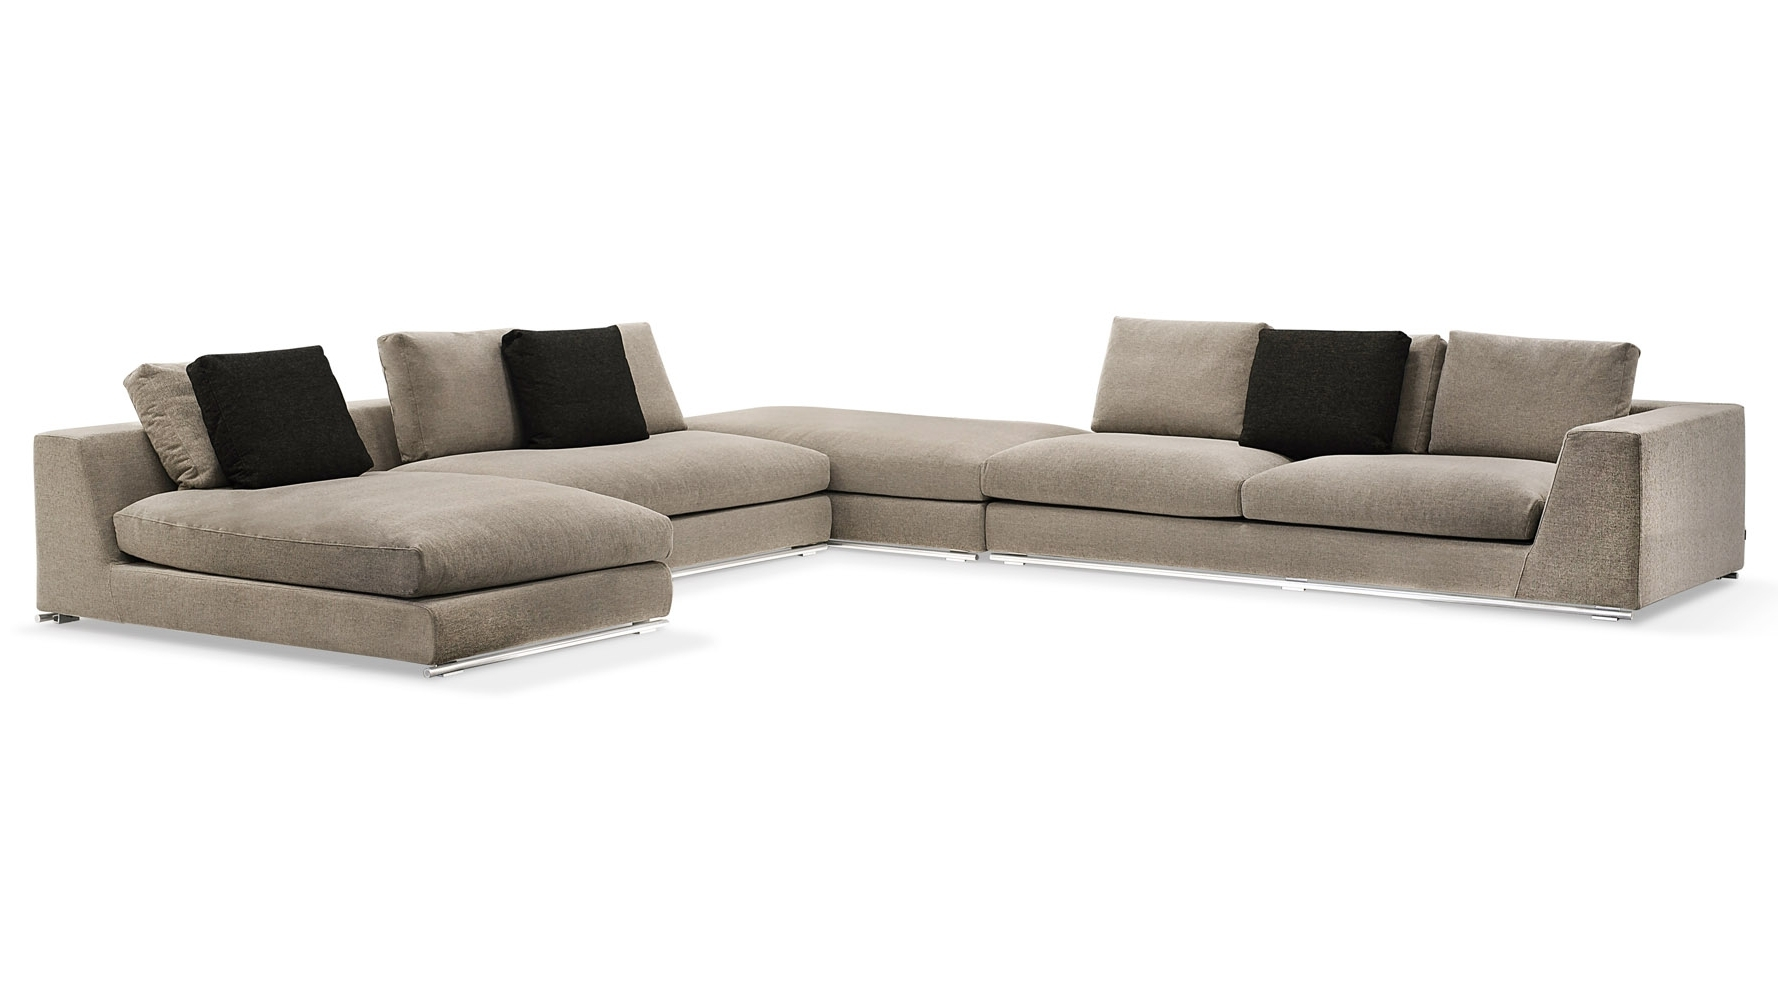 Best And Newest Sectional Sofas With Ottoman Throughout Comodo Sectional Sofa With Ottoman – Grey (View 1 of 20)